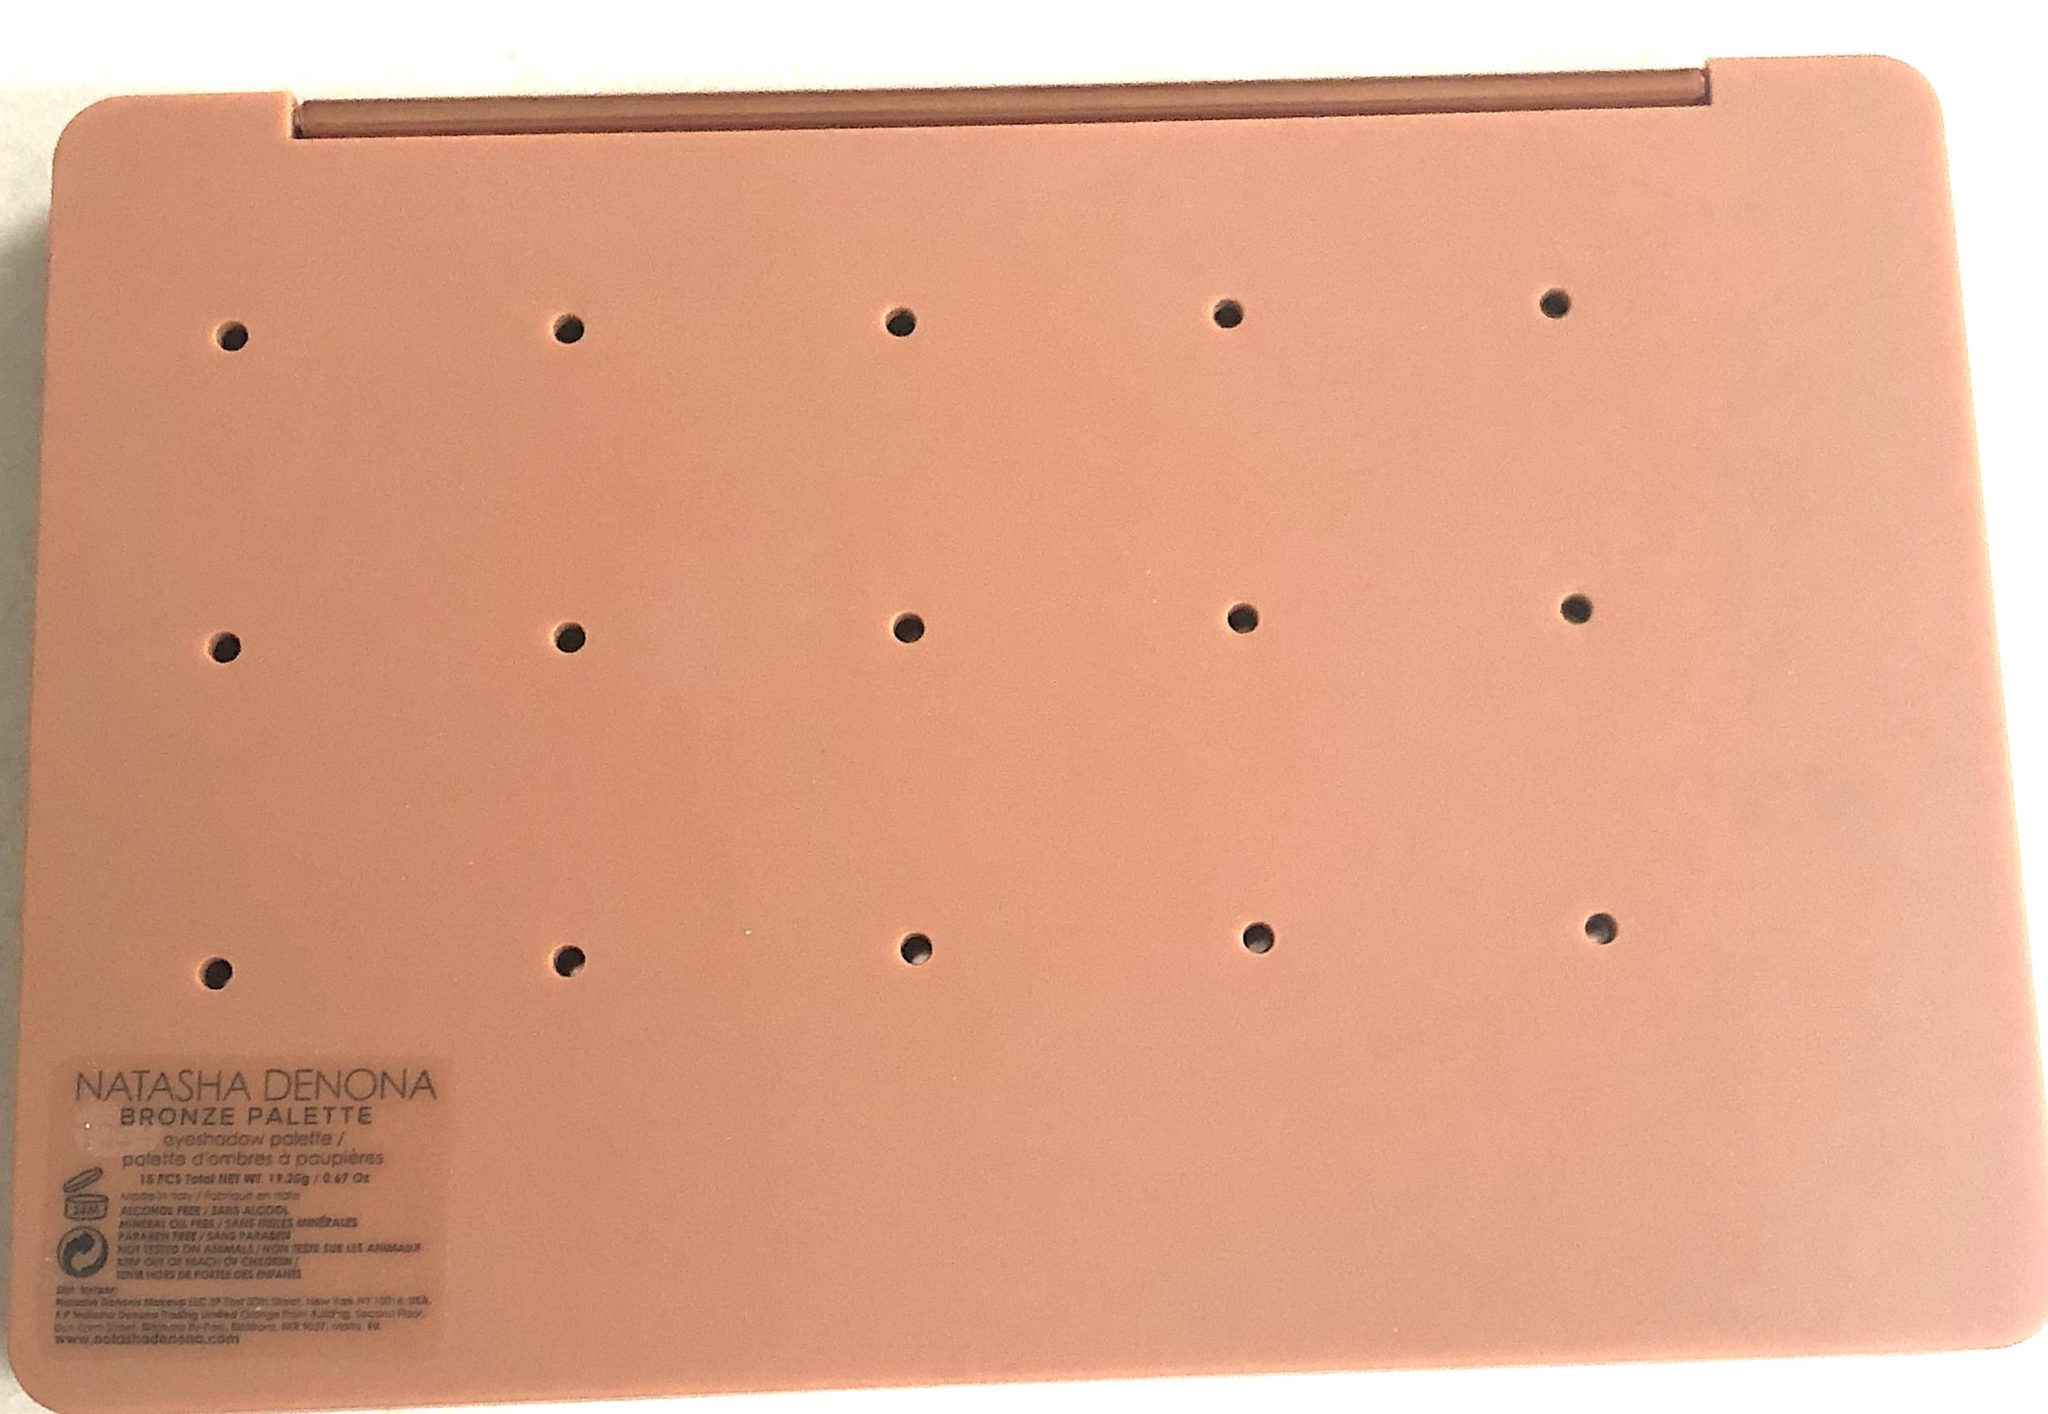 THE BACK OF THE BRONZE EYESHADOW PALETTE HAS PIN HOLES SO YOU CAN REMOVE THE EYESHADOW PANS